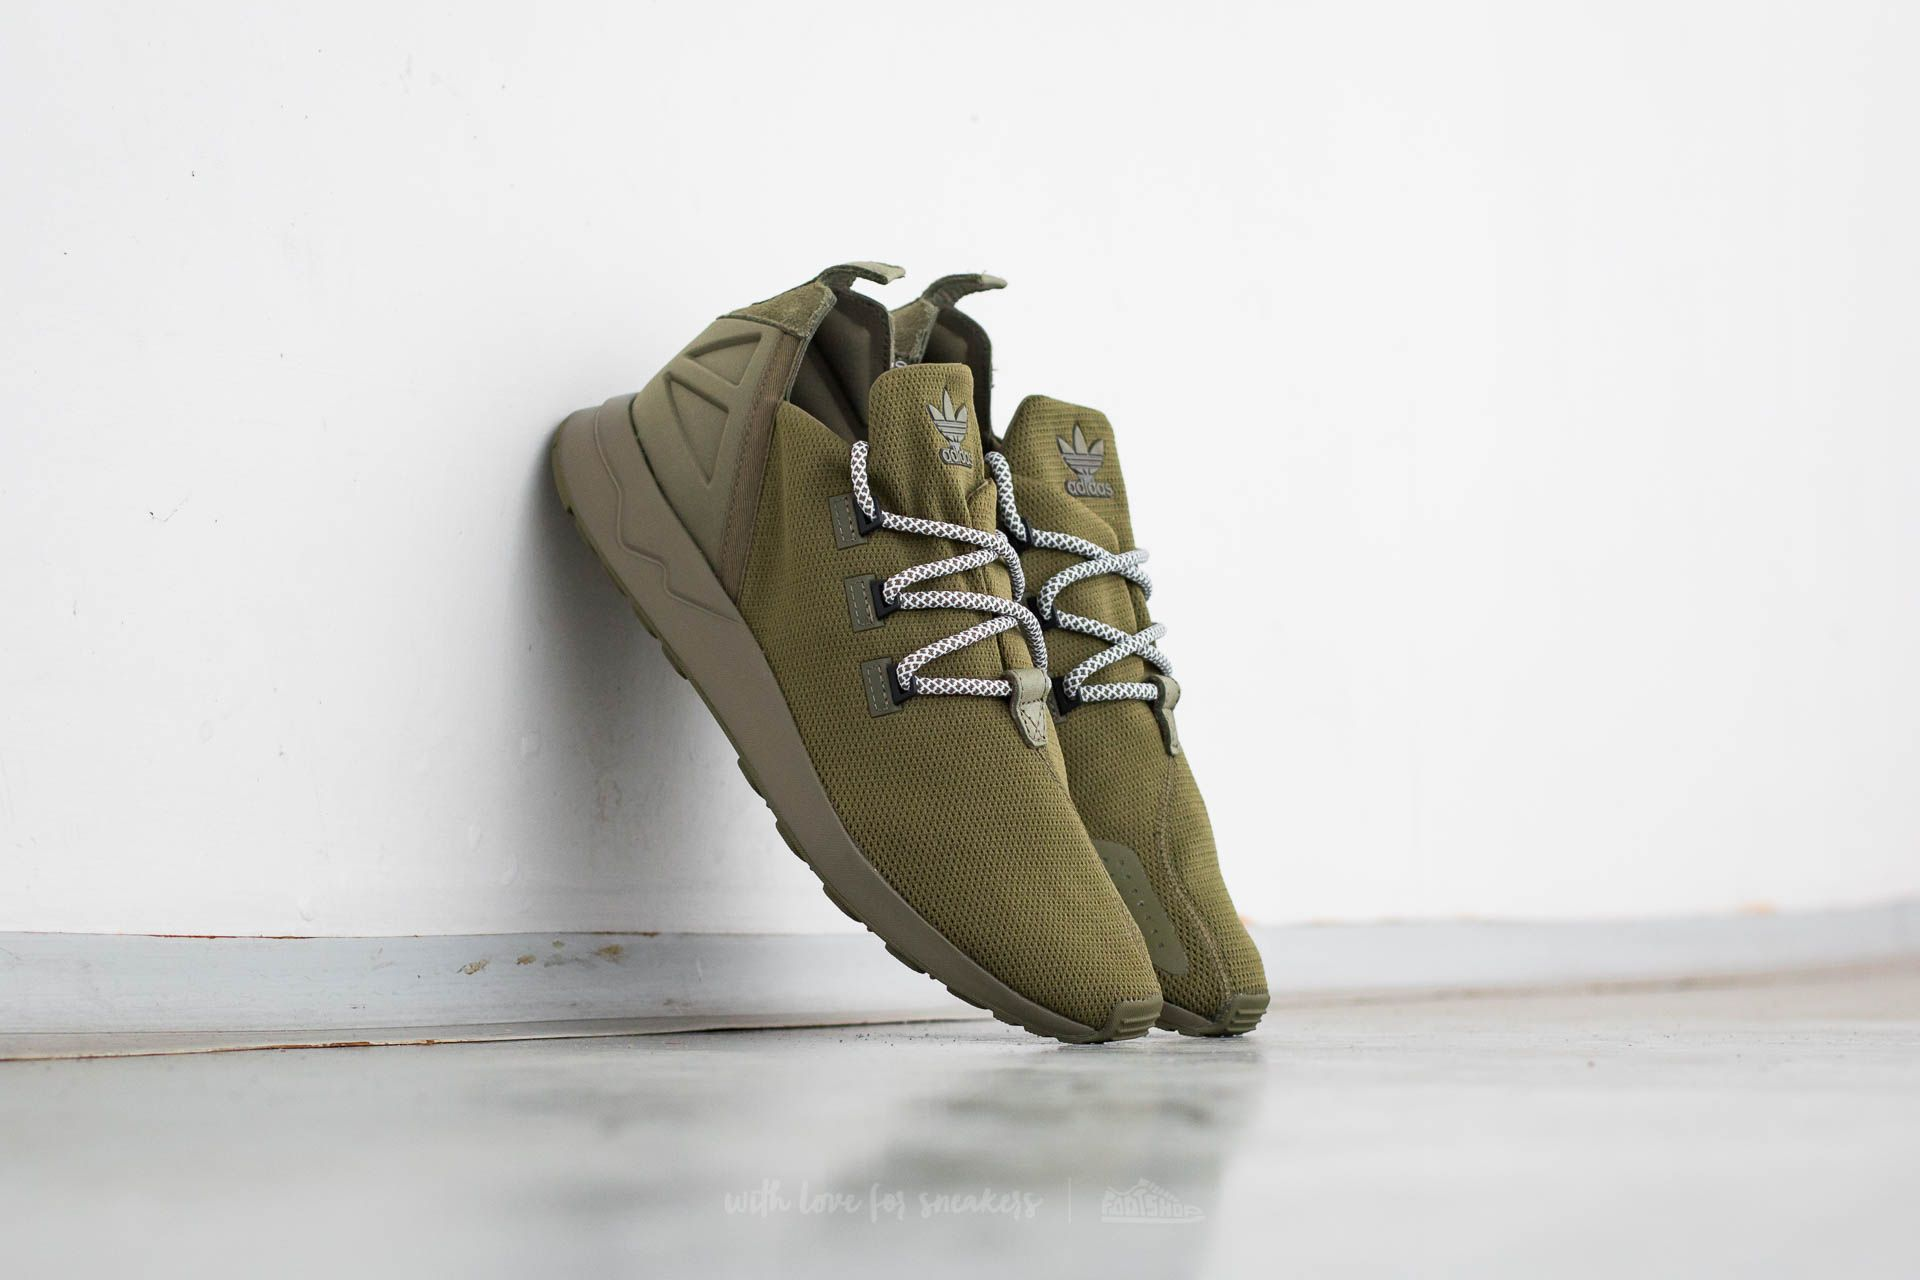 low priced 8412a f67d6 adidas ZX Flux ADV X Olive Cargo/ Core Black/ Ftw White ...